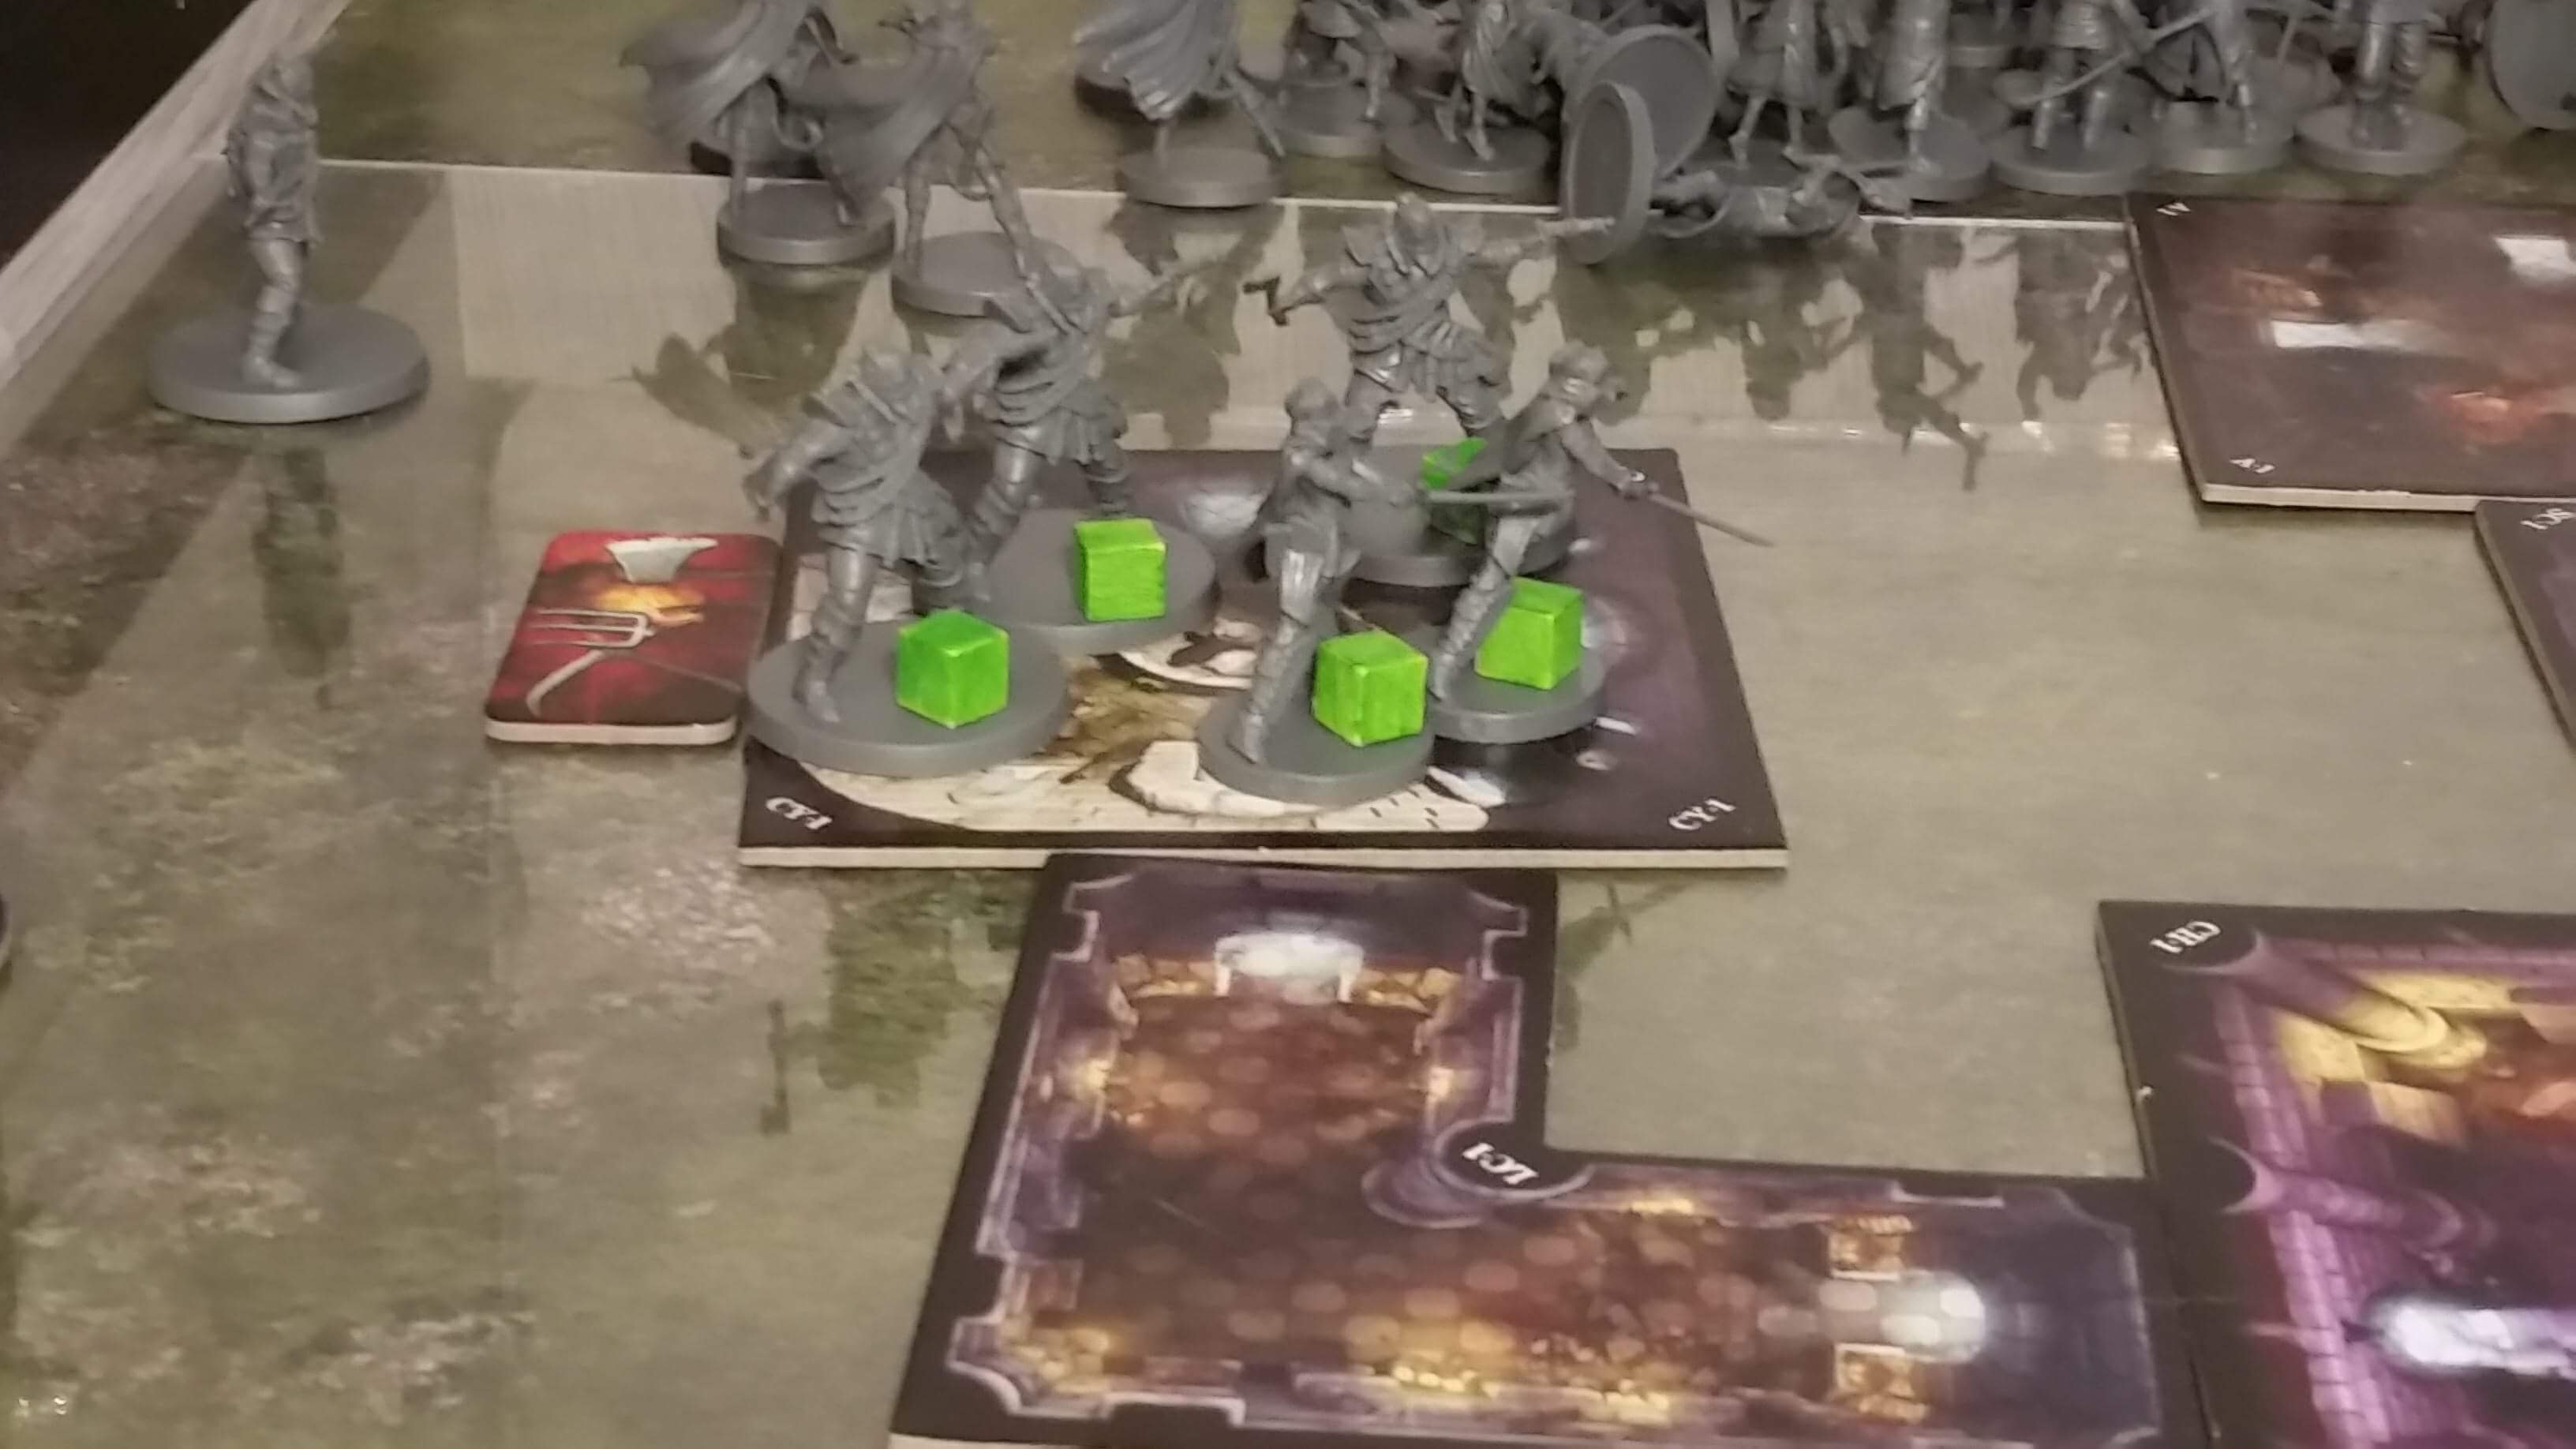 VILLAGE ATTACKS HORRORS OF THE SANDS EXPANSION PACK FOR BOARD GAME